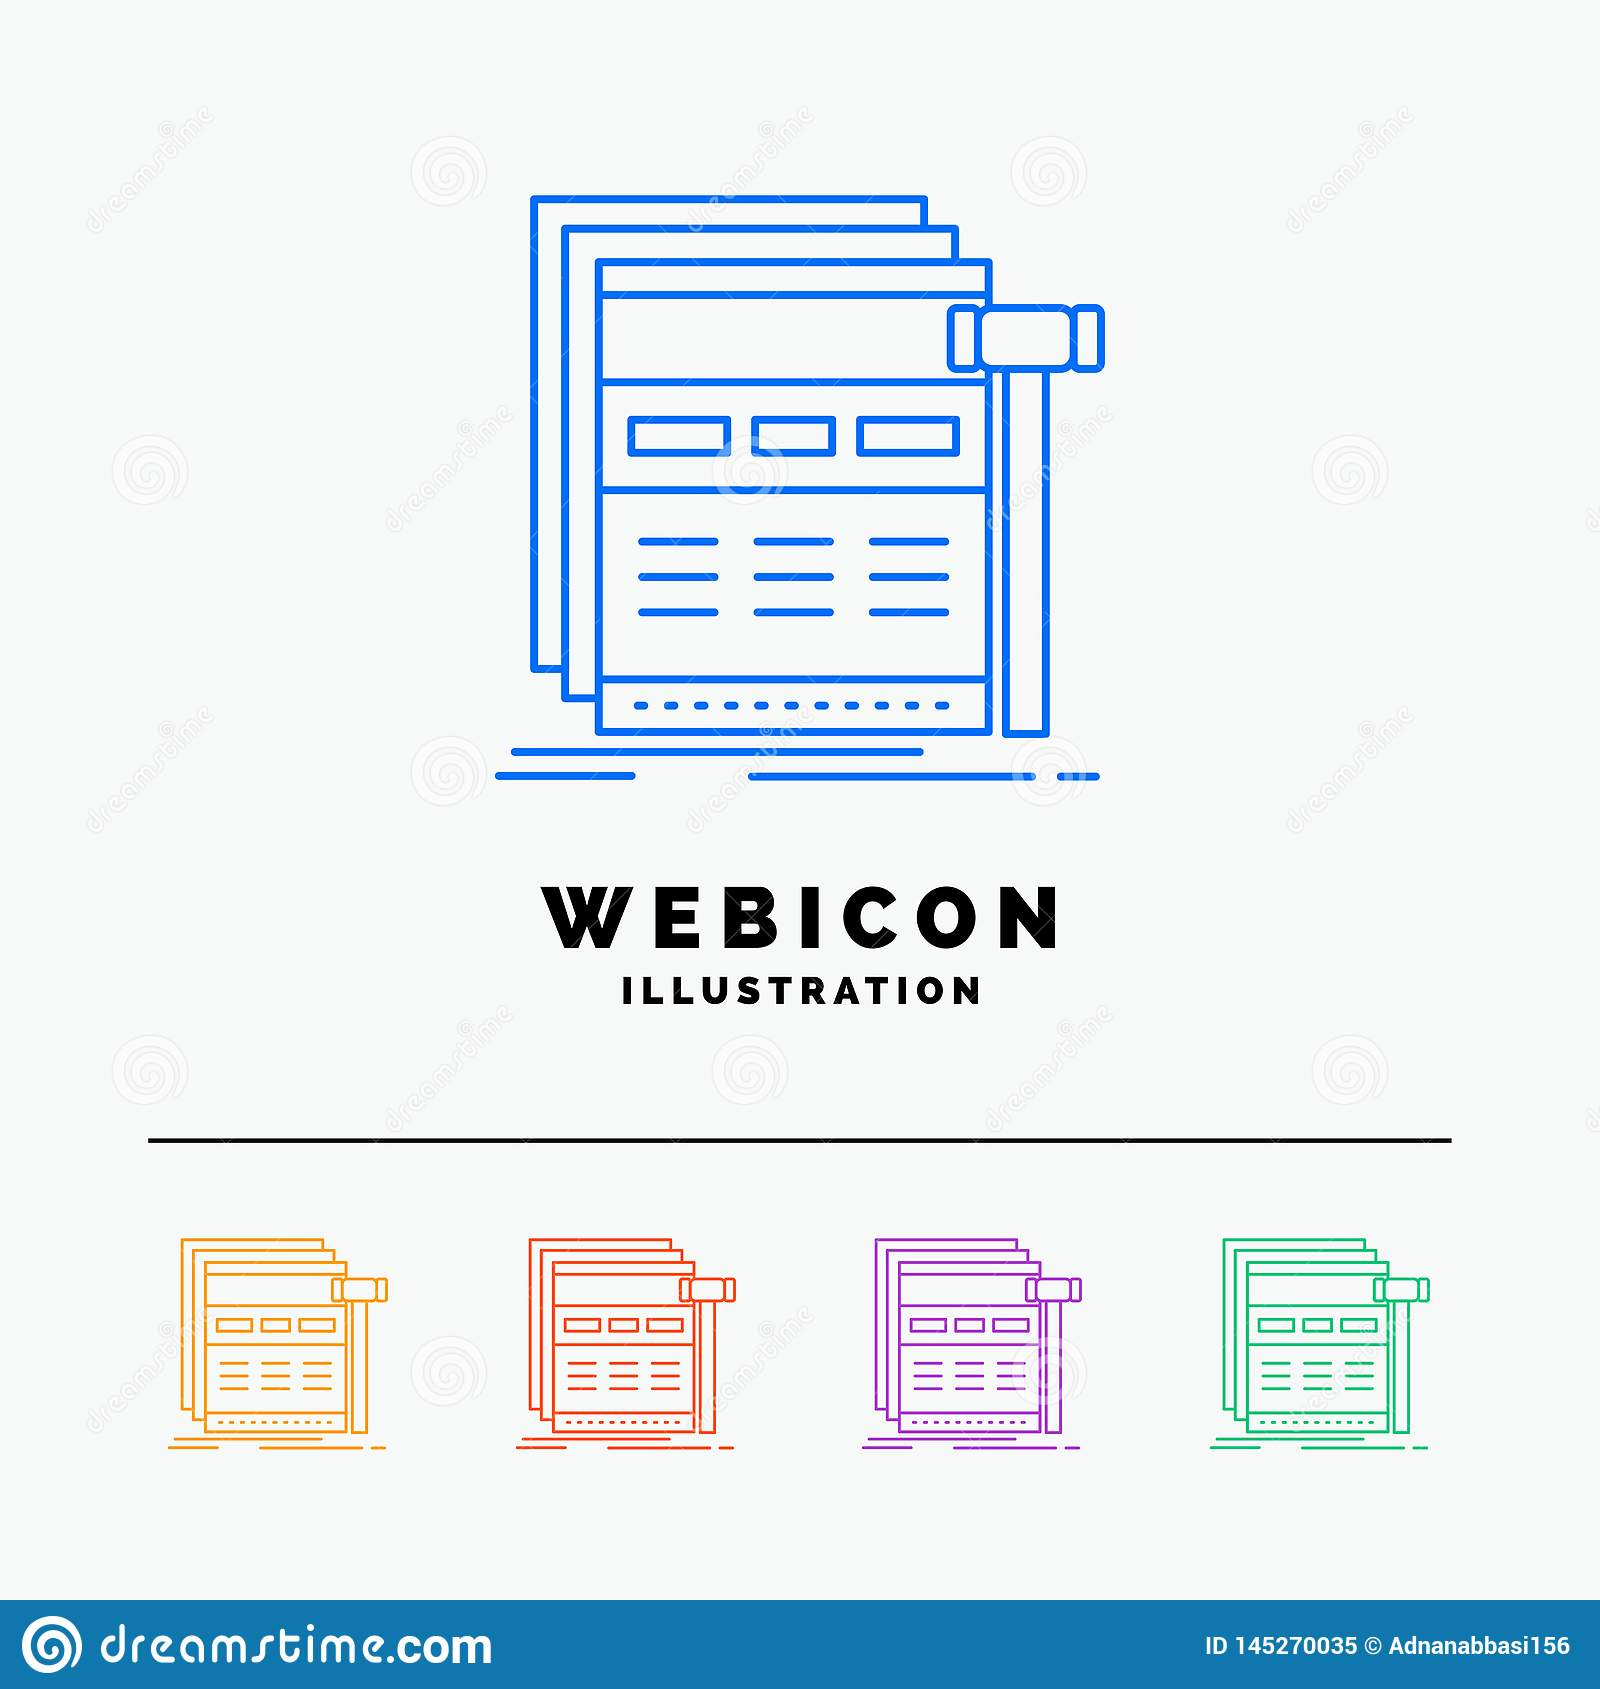 Internet, page, web, webpage, wireframe 5 Color Line Web Icon Template isolated on white. Vector illustration